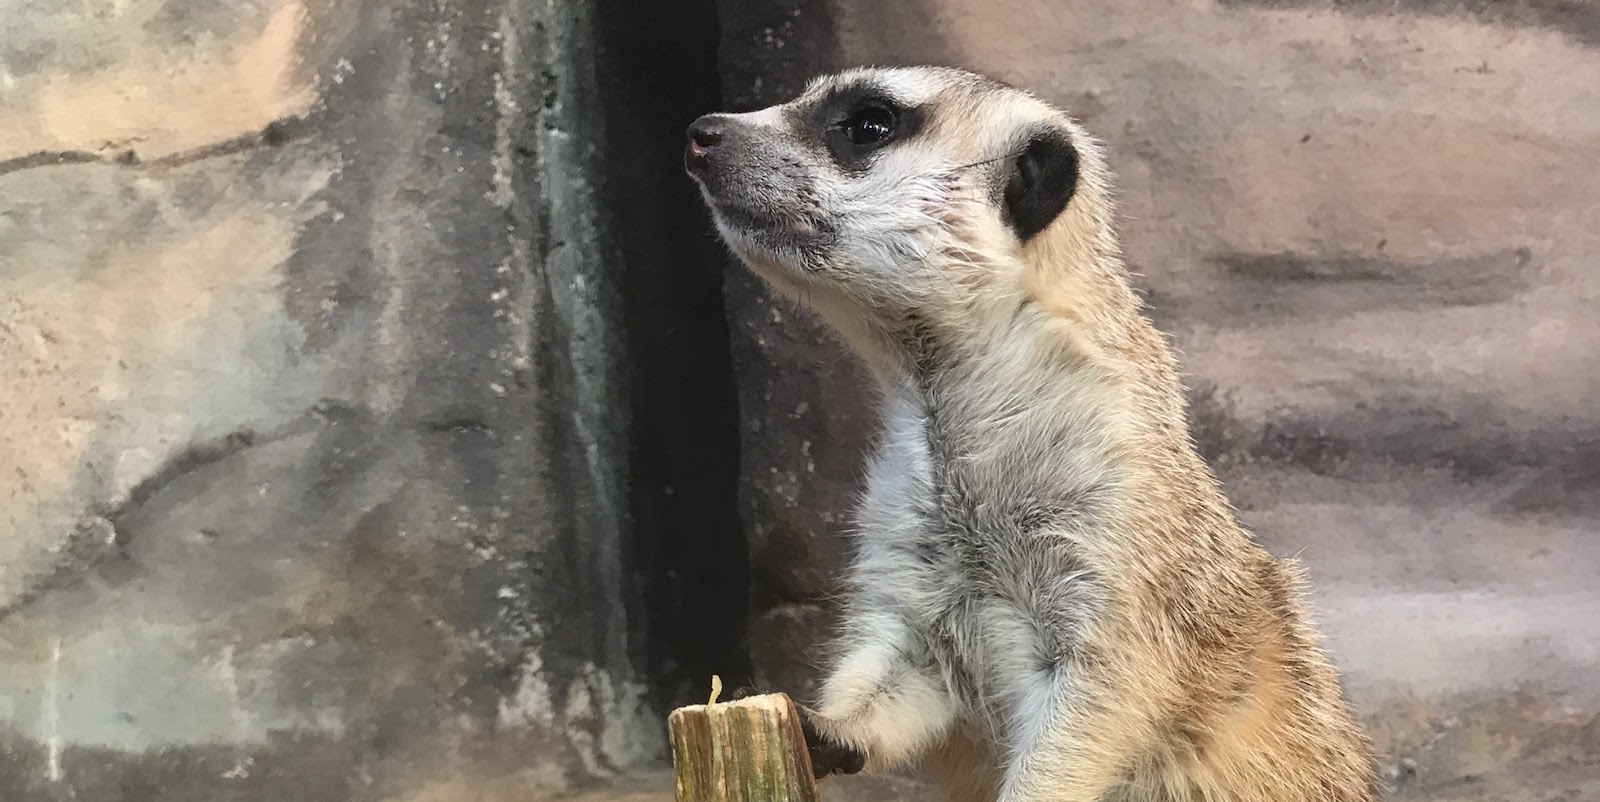 Meerkat Encounter photo